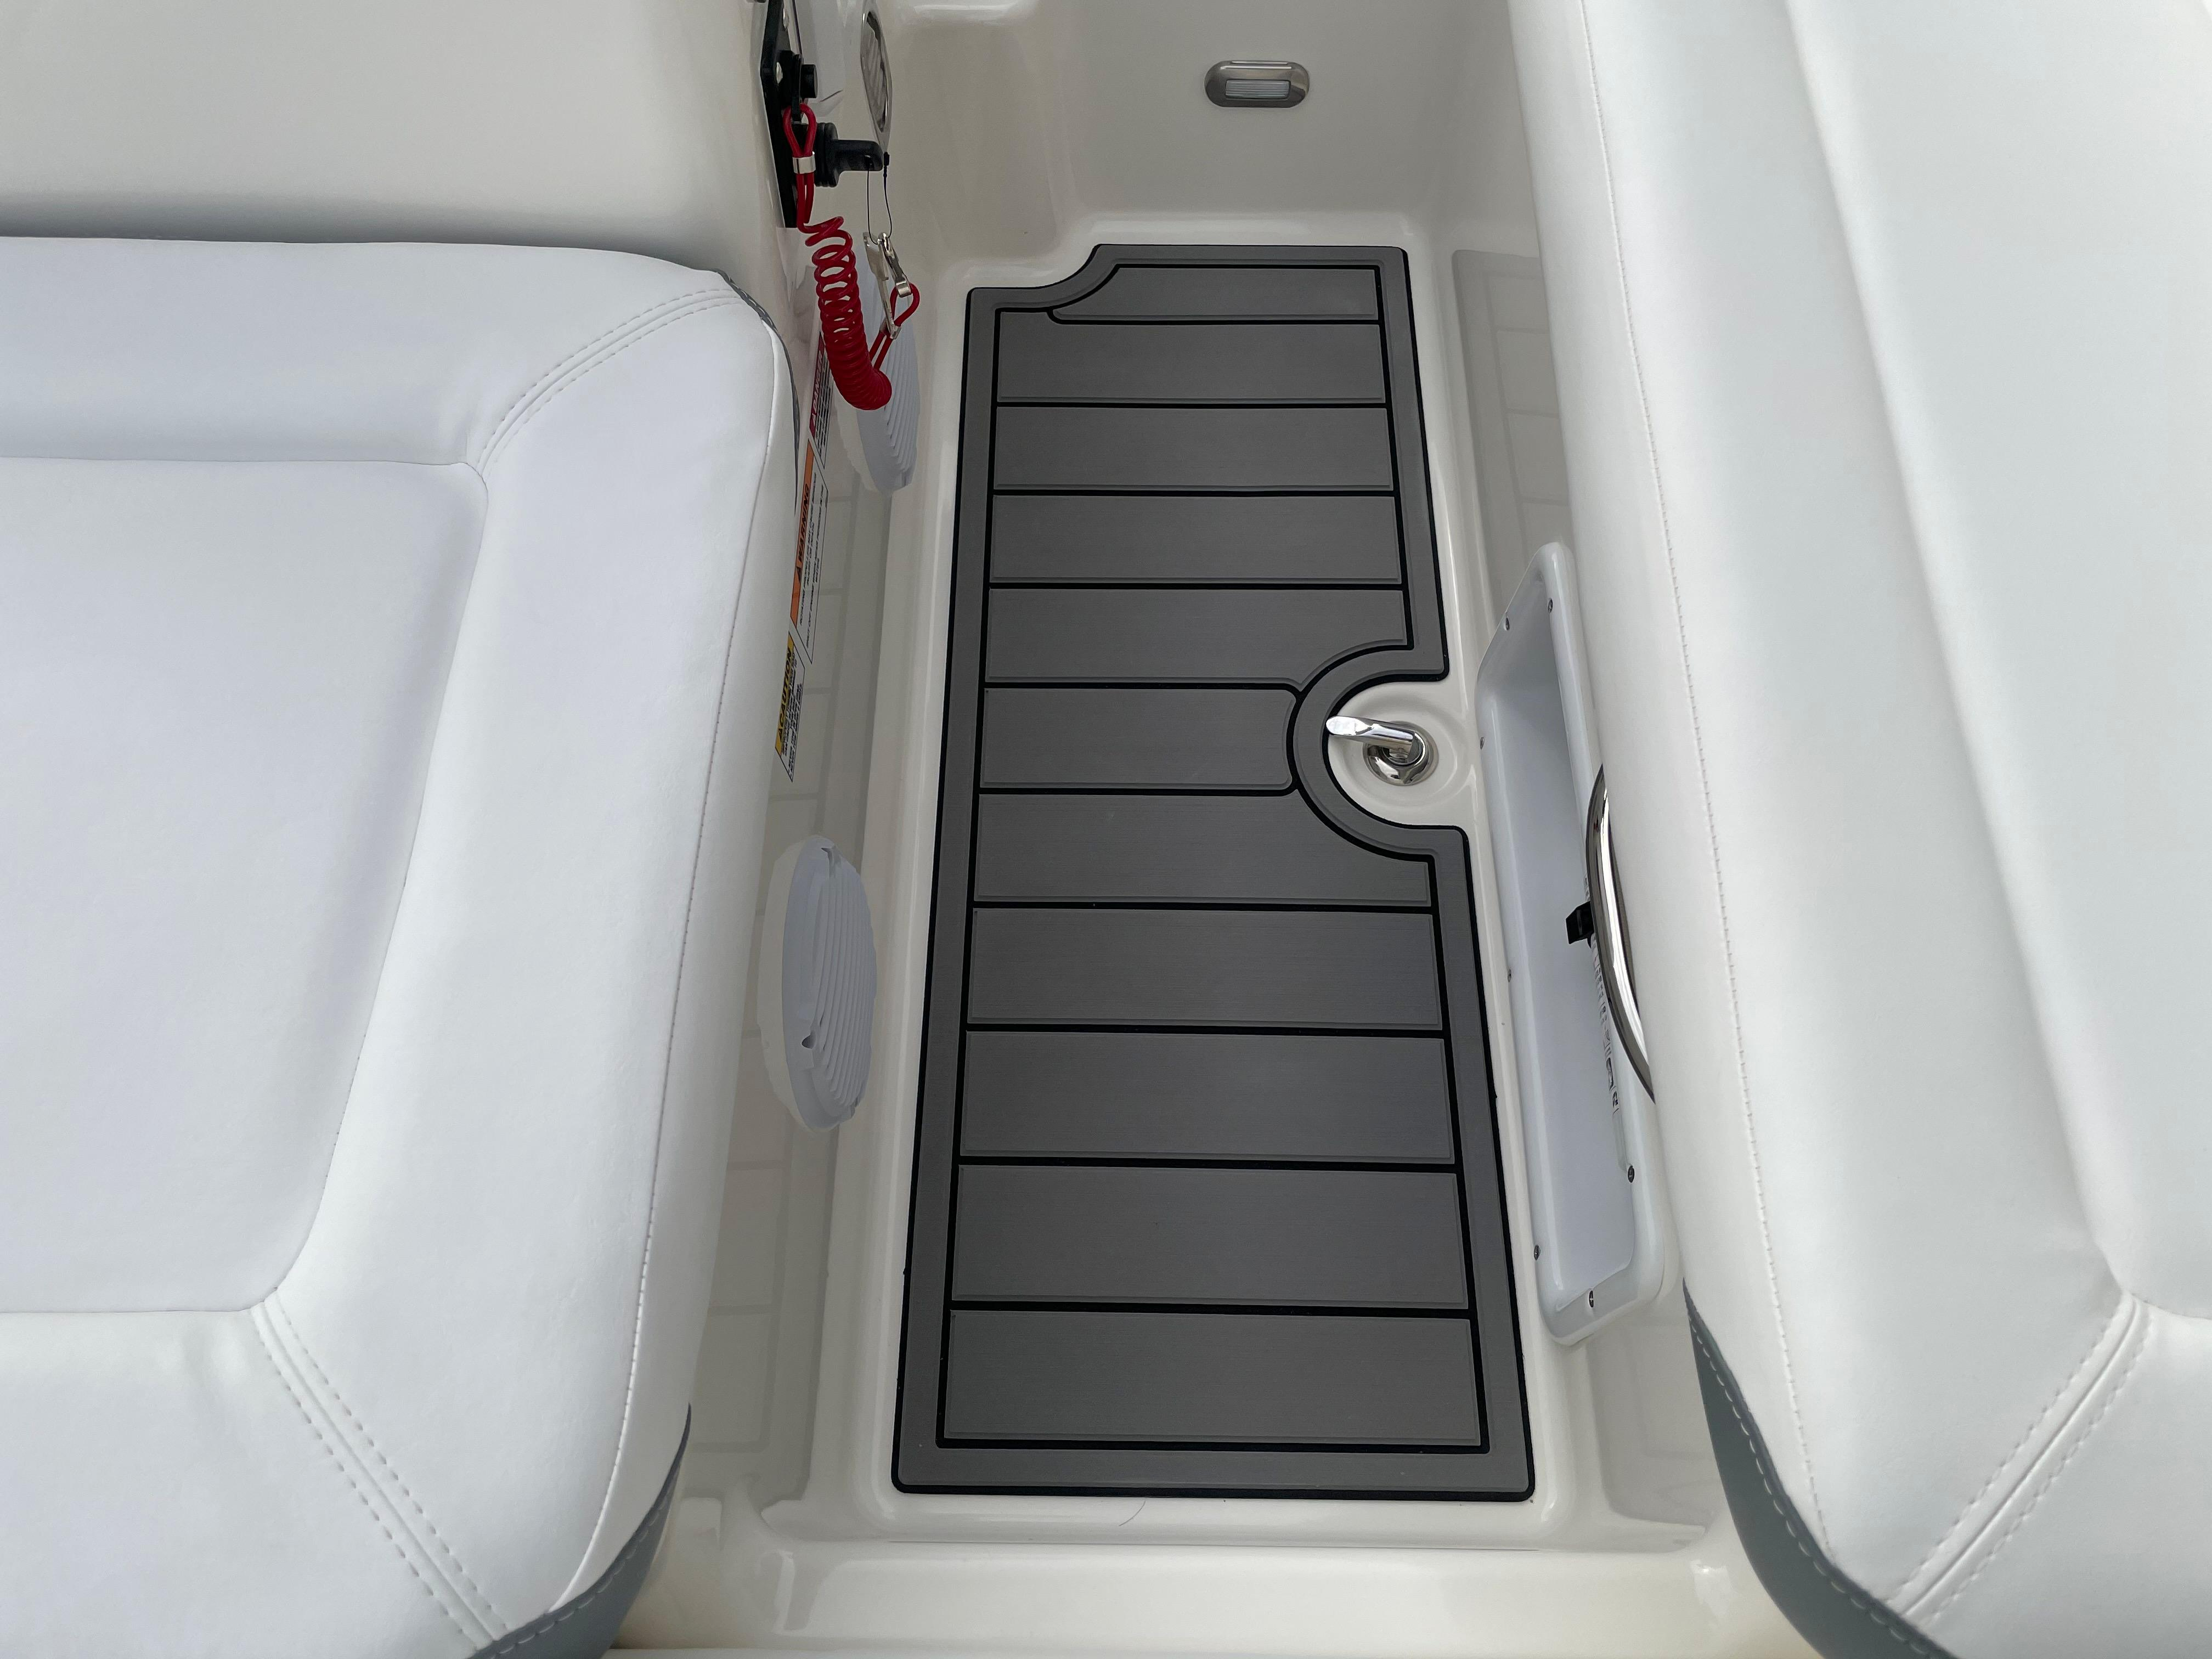 2022 Zodiac Yachtline 490 Deluxe NEO GL Edition 90hp On Order, Image 19